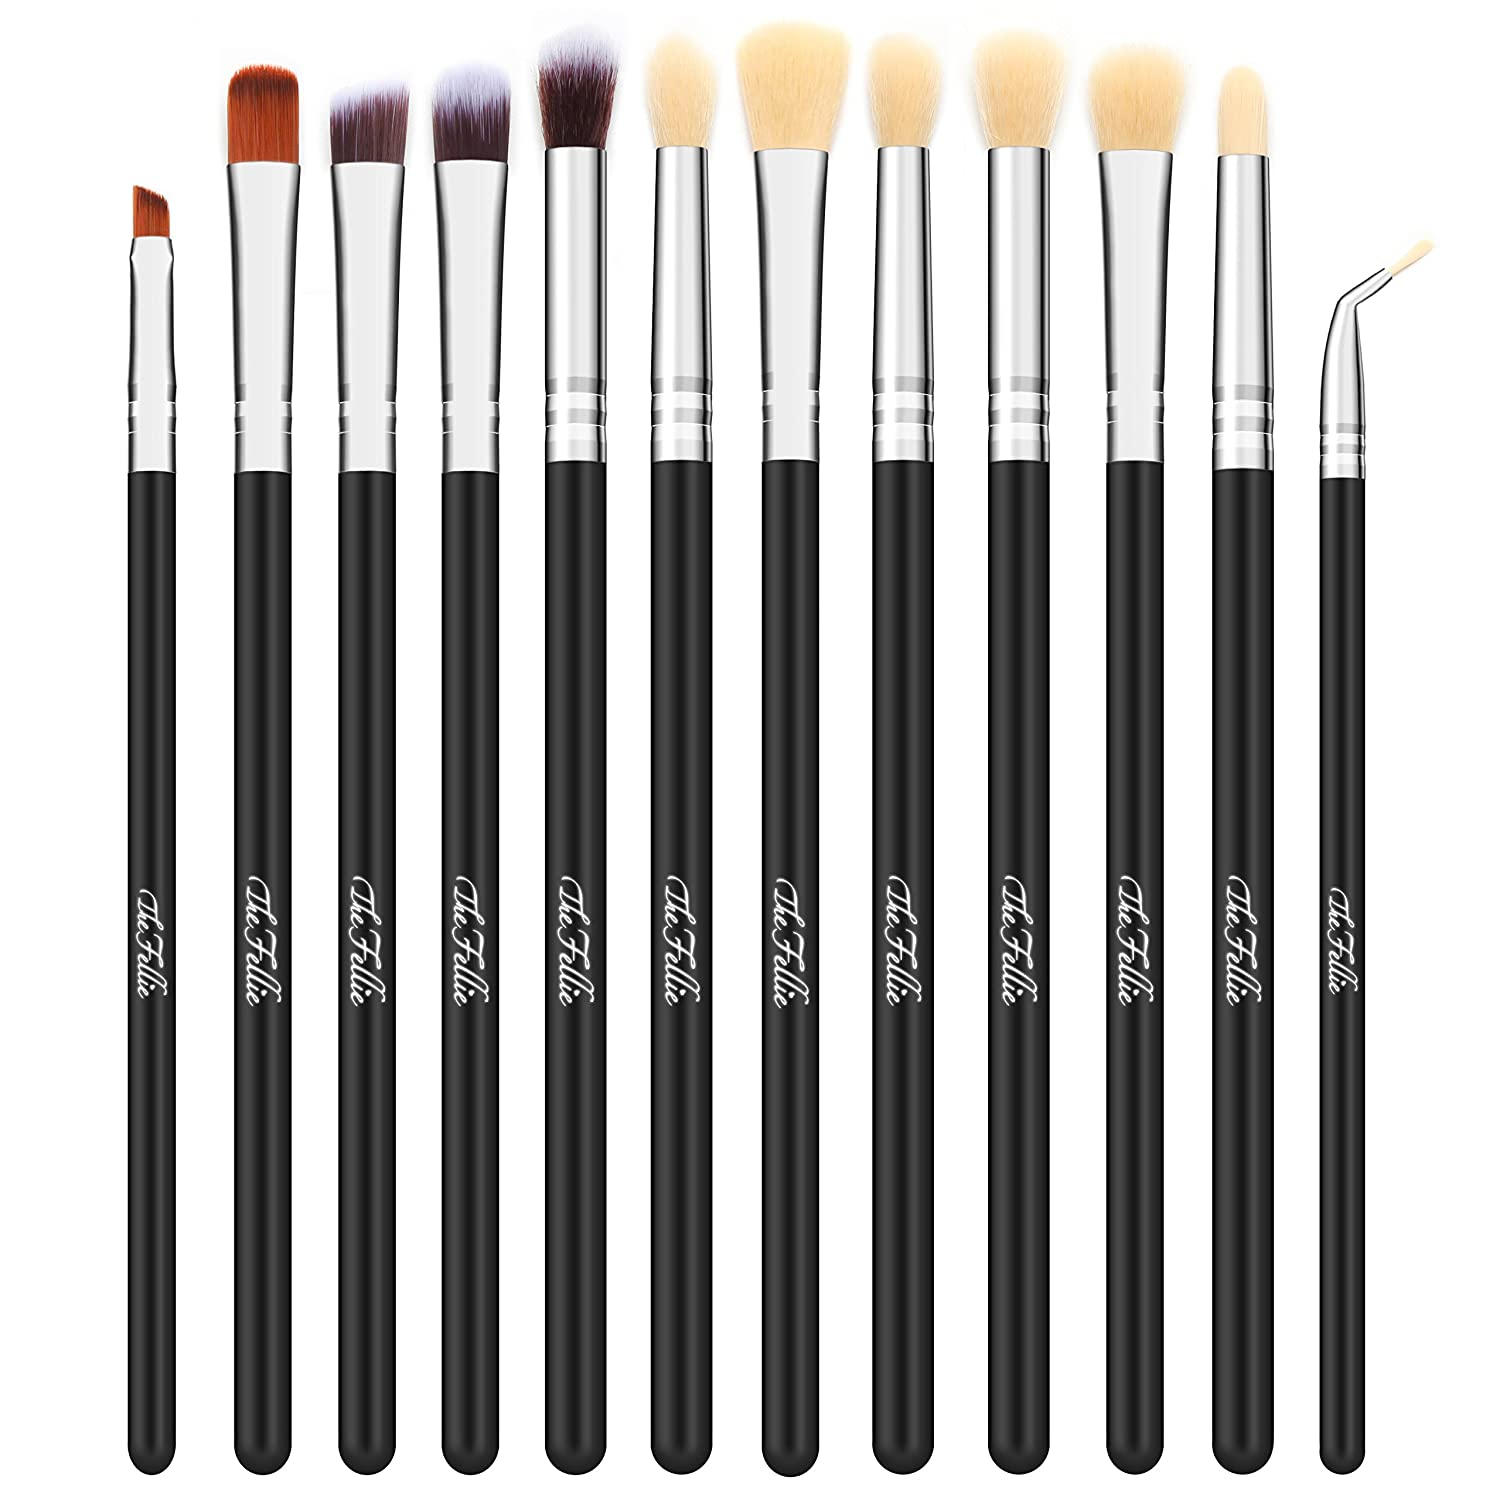 TheFellie Eye Makeup Brushes, Eyeshadow Blending Makeup Brush Set Professional Concealer Eyeliner Eyebrow Cosmetic Brushes ( Black Silver, 12 Pieces )